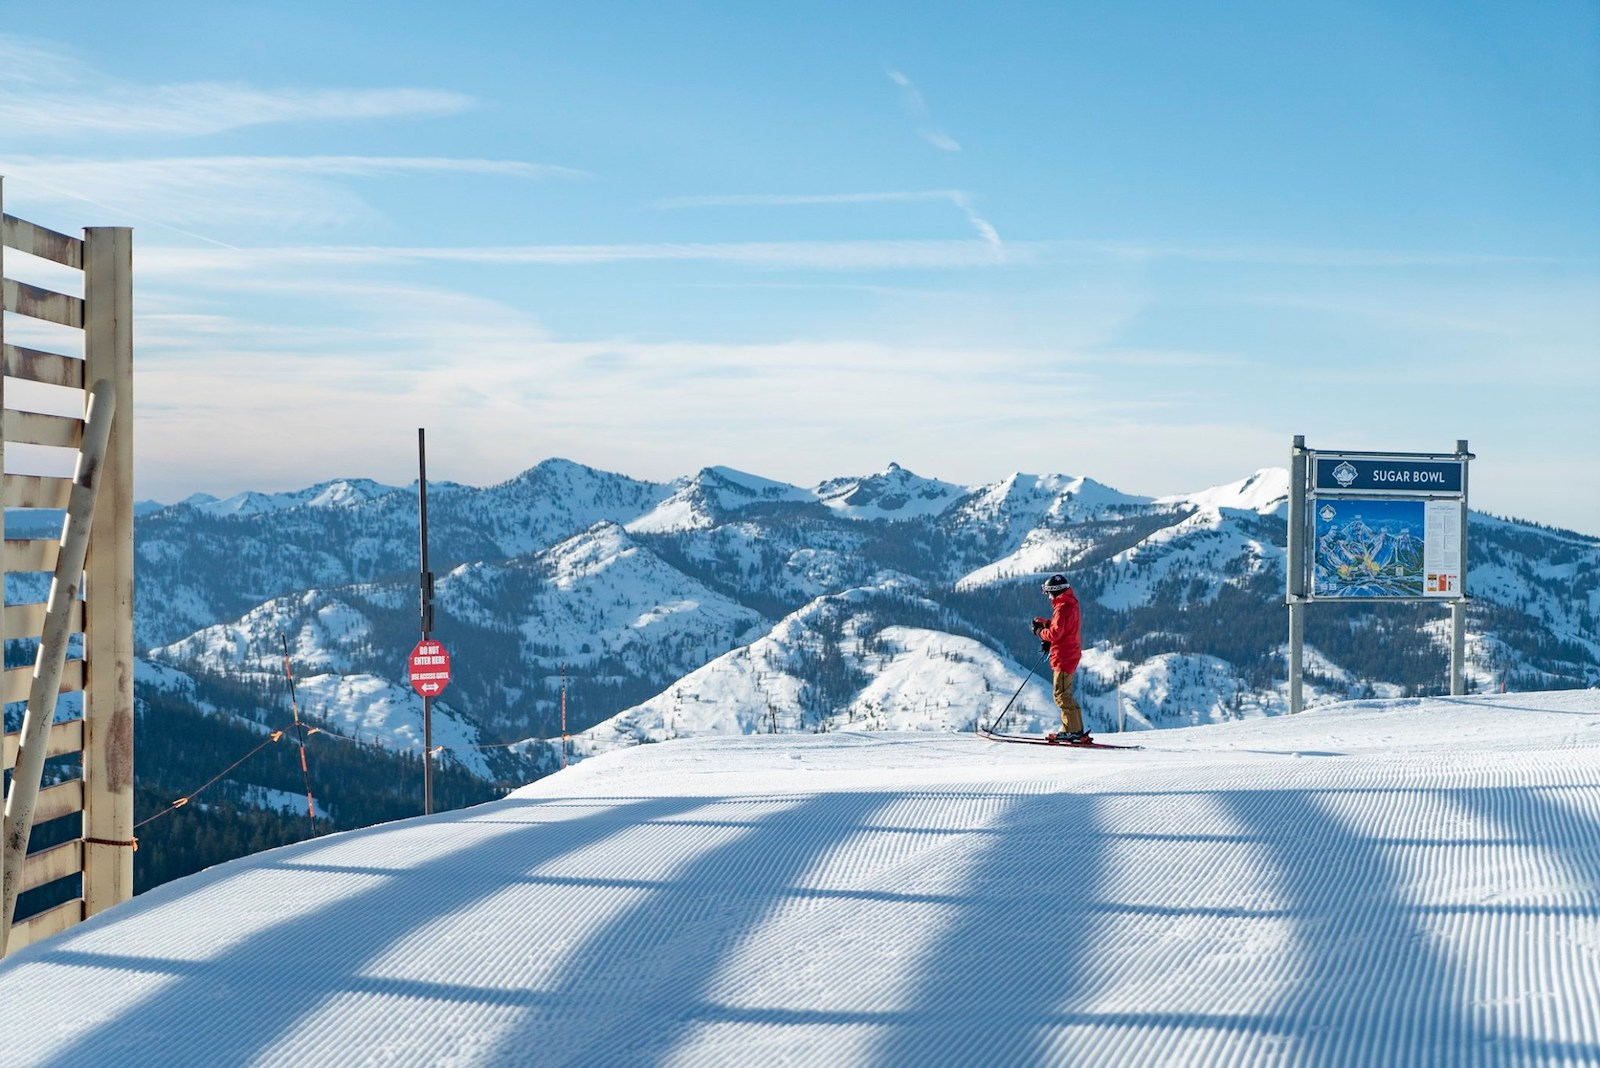 Image of a skier in red at Sugar Bowl Resort in California at the top of the slope looking over the mountains